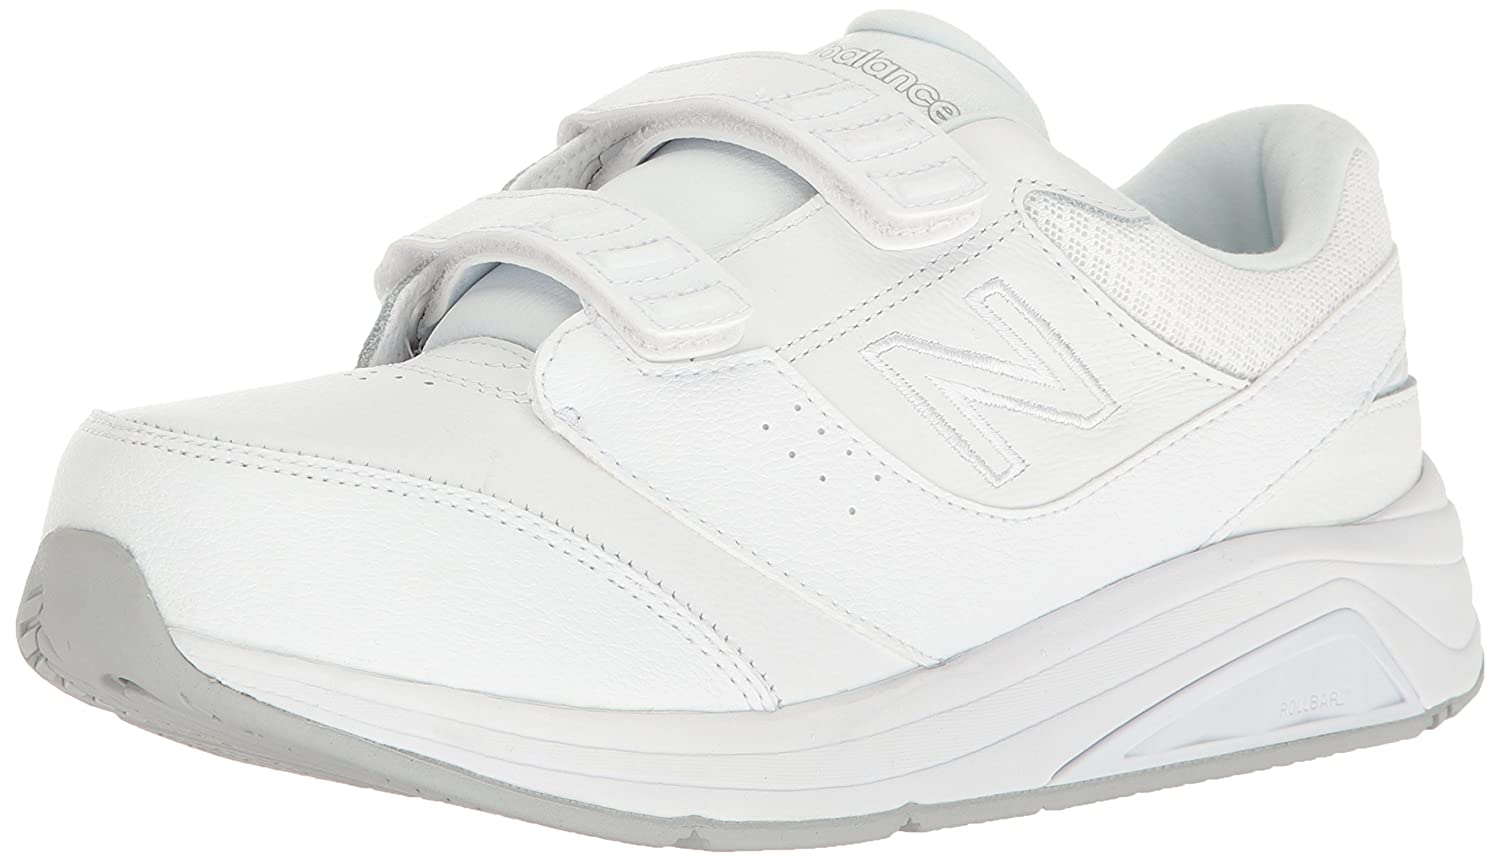 New Balance Women's Womens 928v3 Walking Shoe Walking Shoe B01N43MCRJ 12 B(M) US|White/White